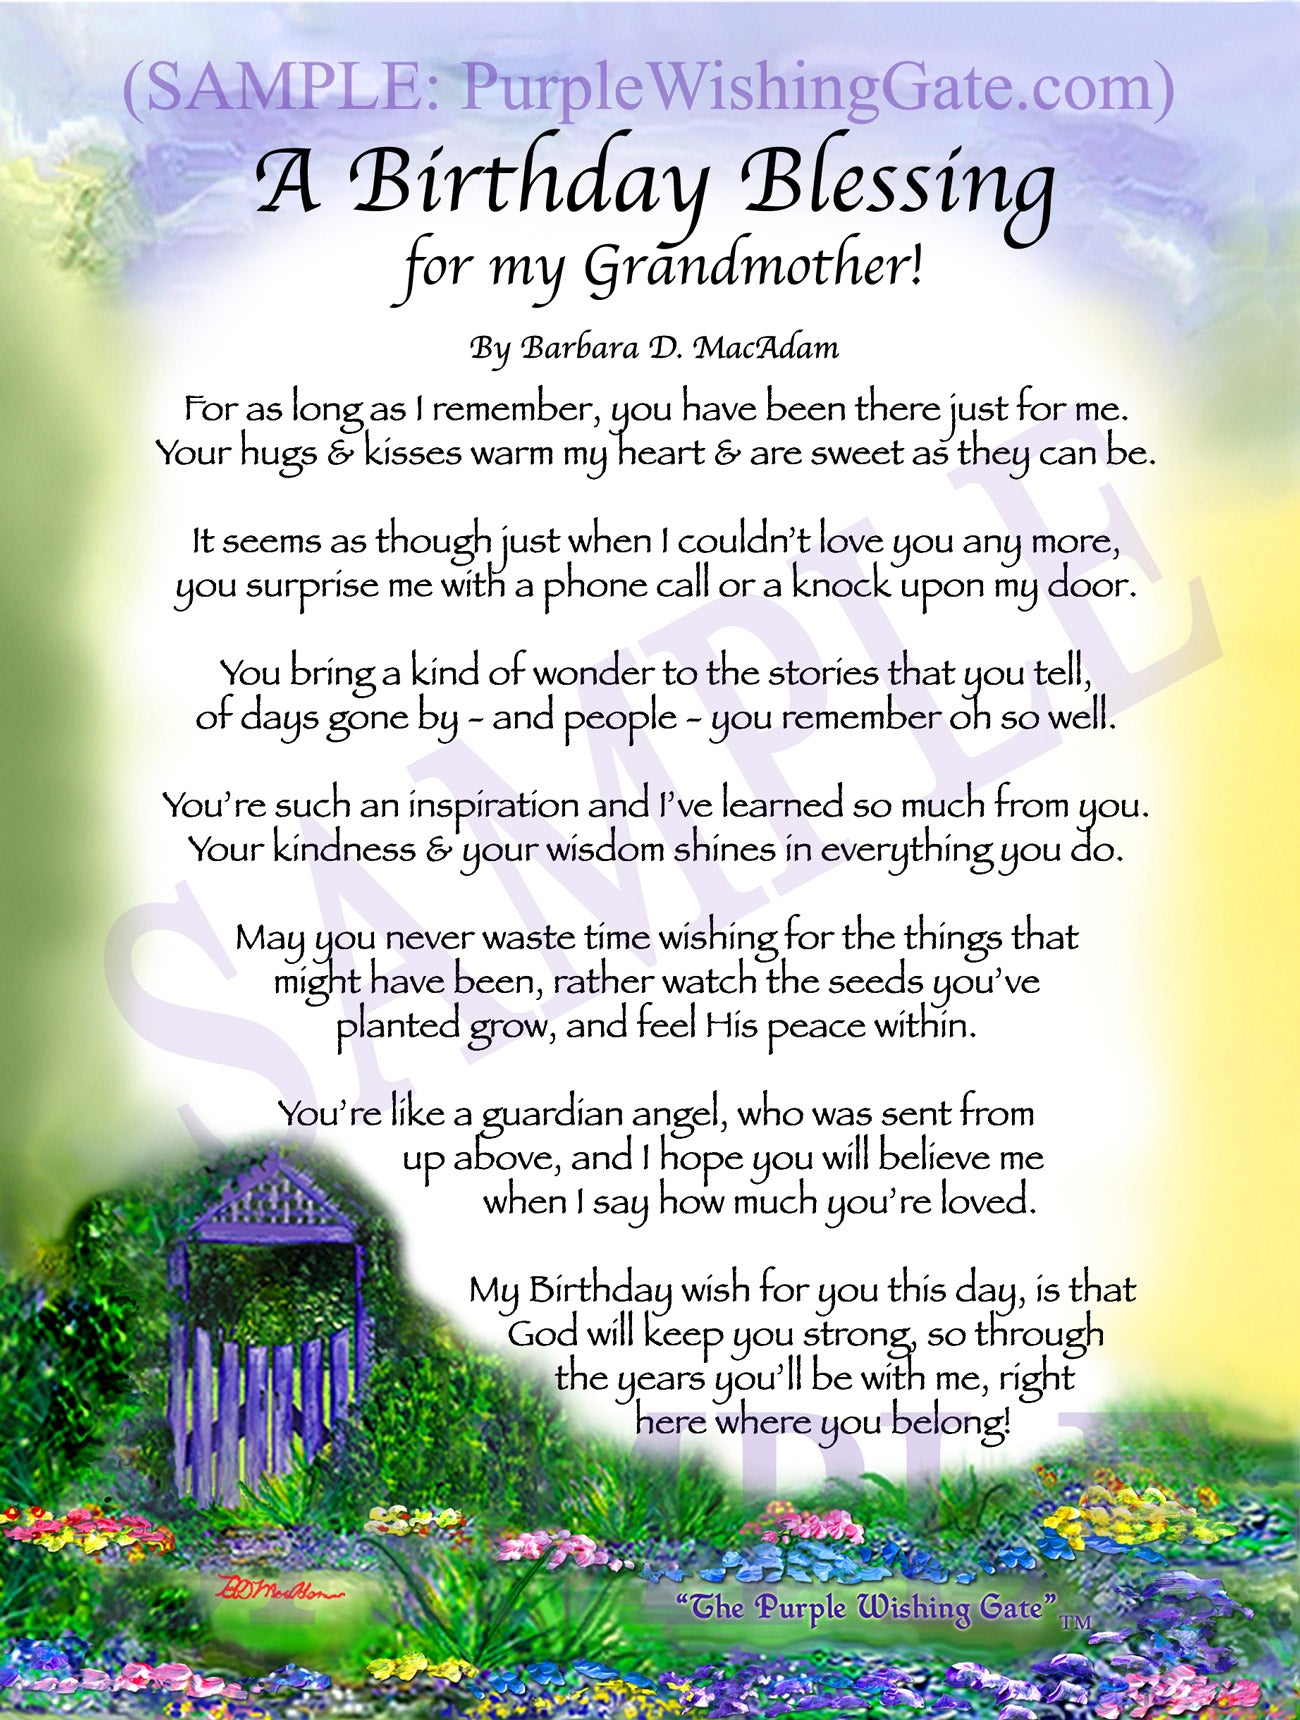 A Birthday Blessing For My Grandmother